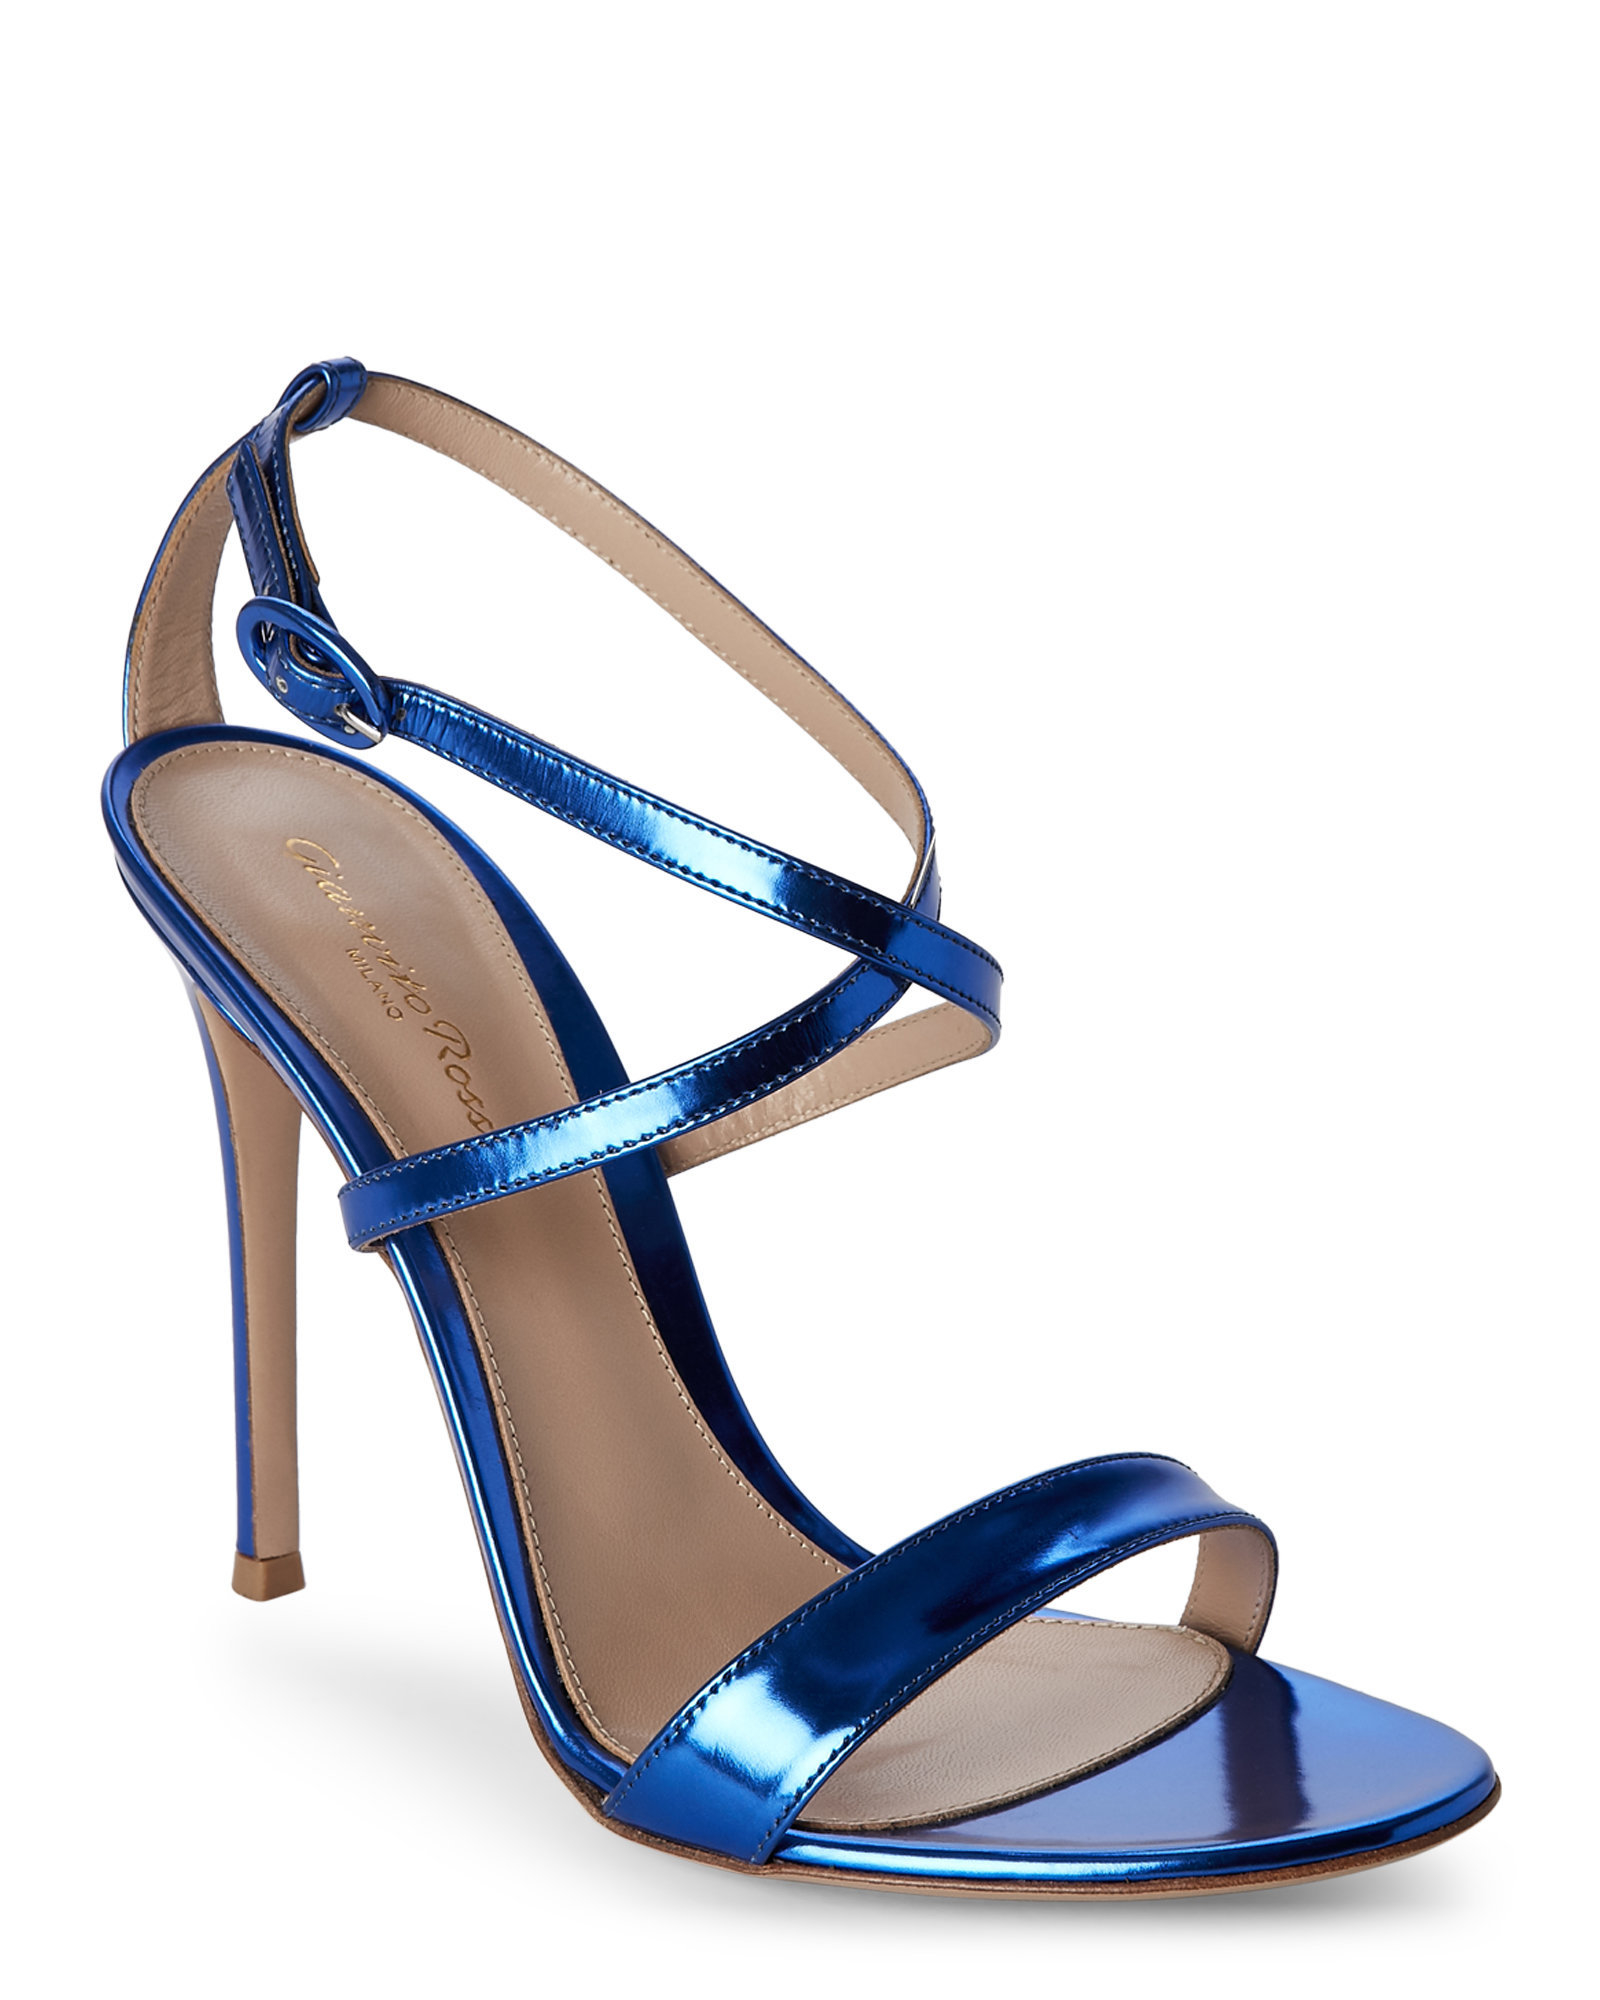 0eb94a2367a1 Lyst - Gianvito Rossi Metallic Cobalt Strappy Sandals in Blue